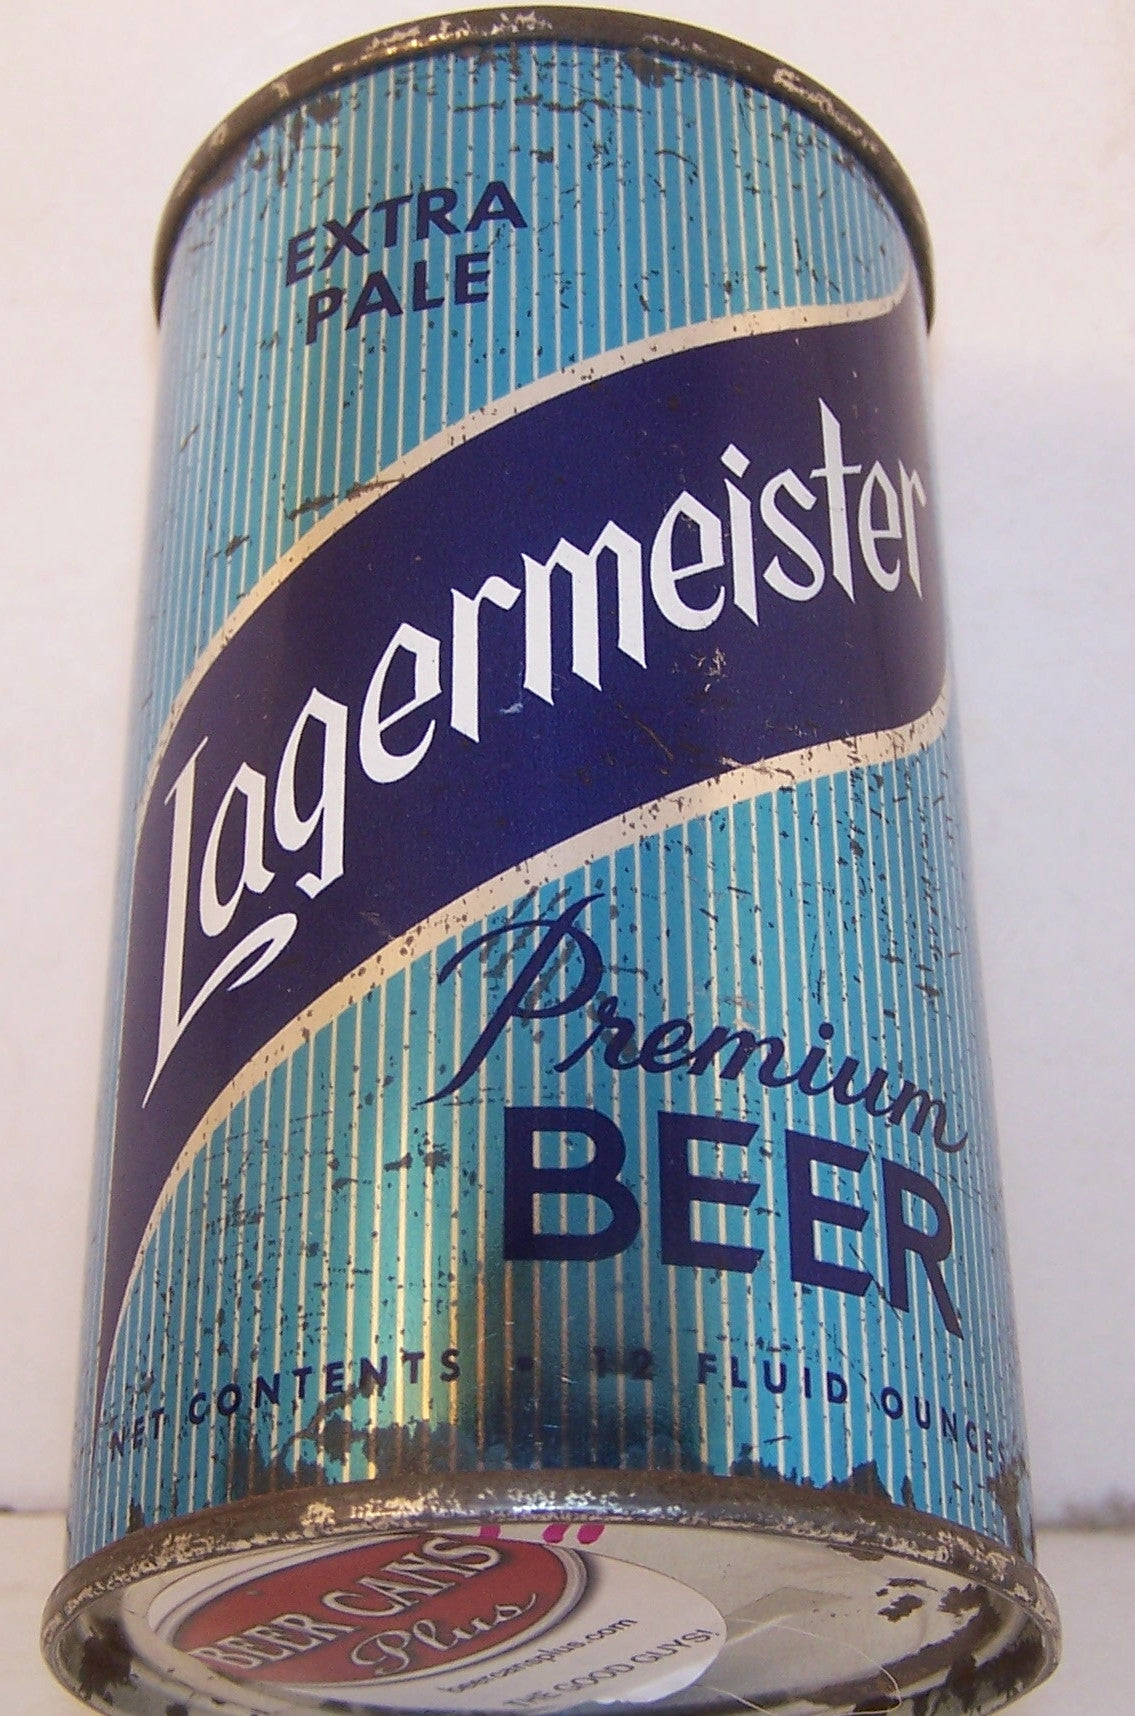 Lagermeister Premium Beer, USBC 90-37, Grade 1- Sold on 07/23/16